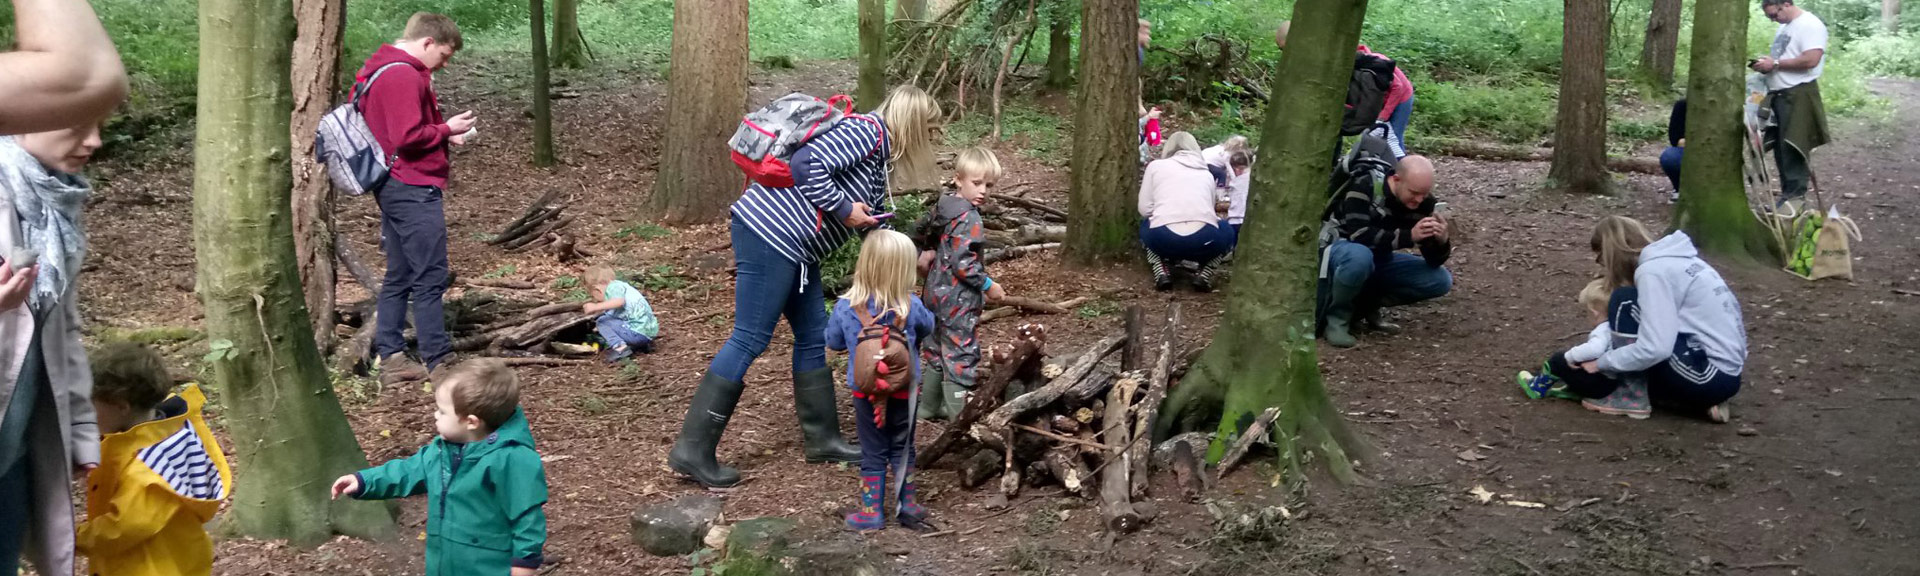 family children woodland events